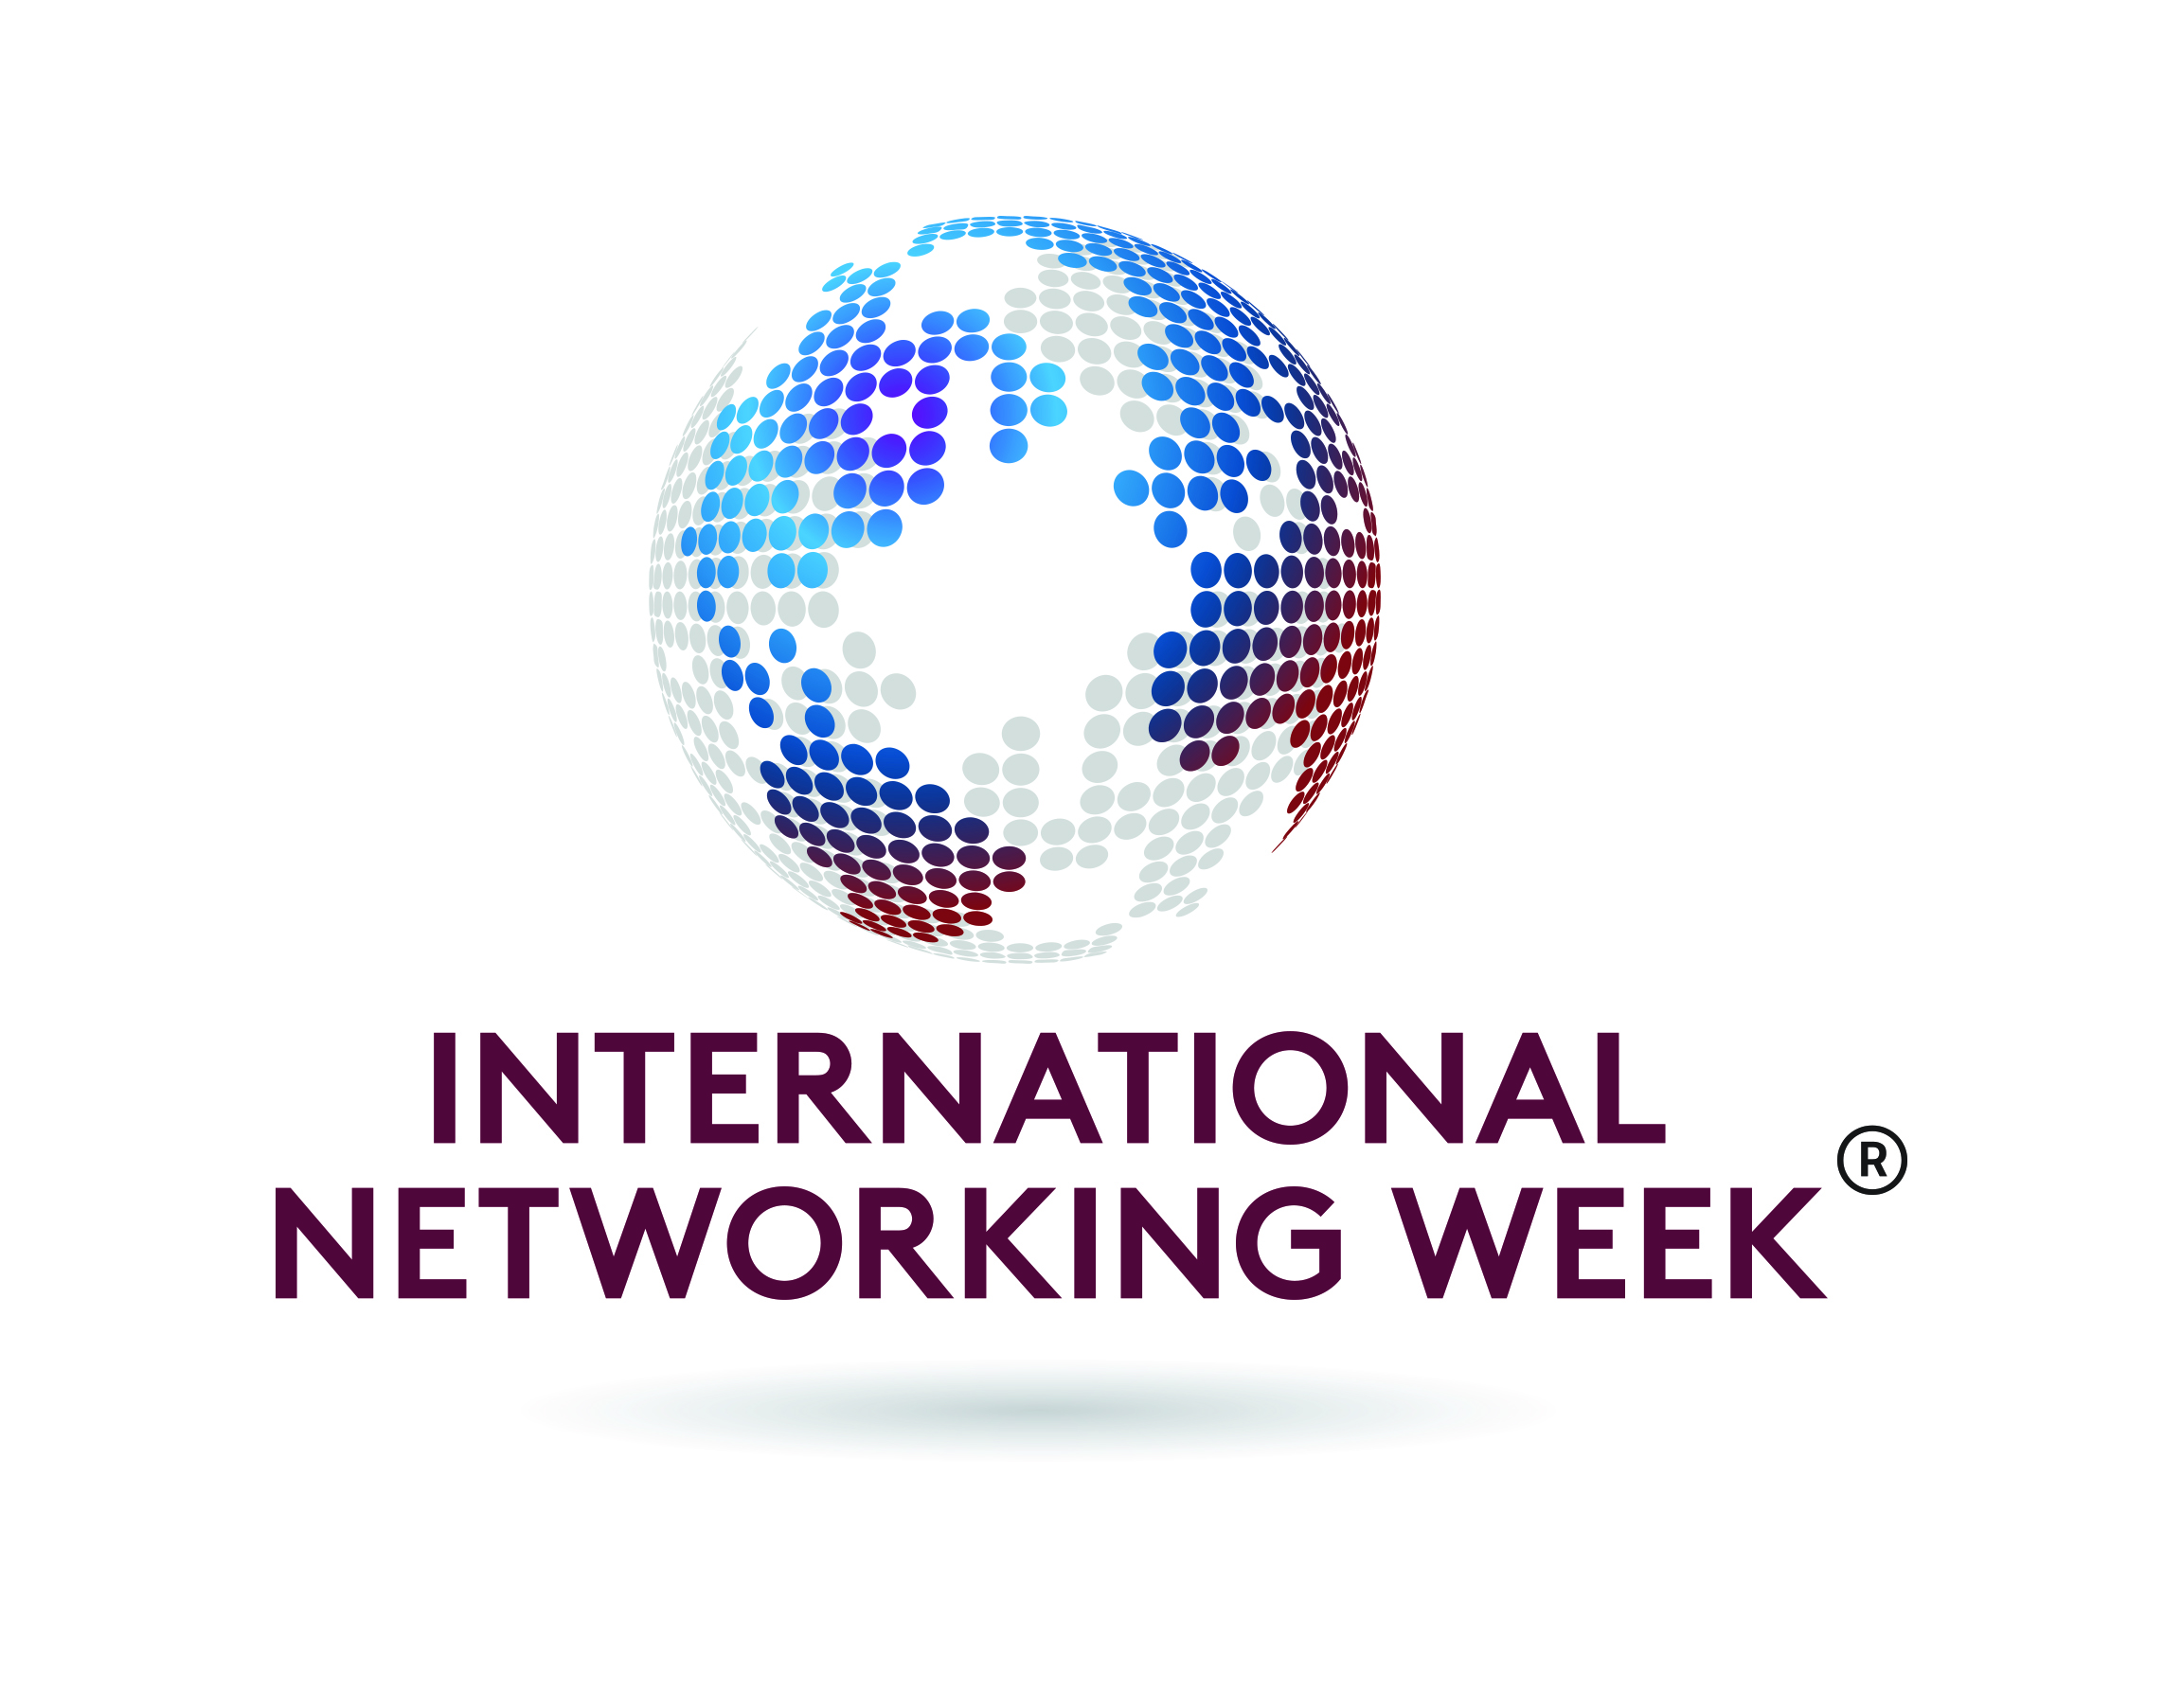 Network with Forward Momentum Using International Networking Week